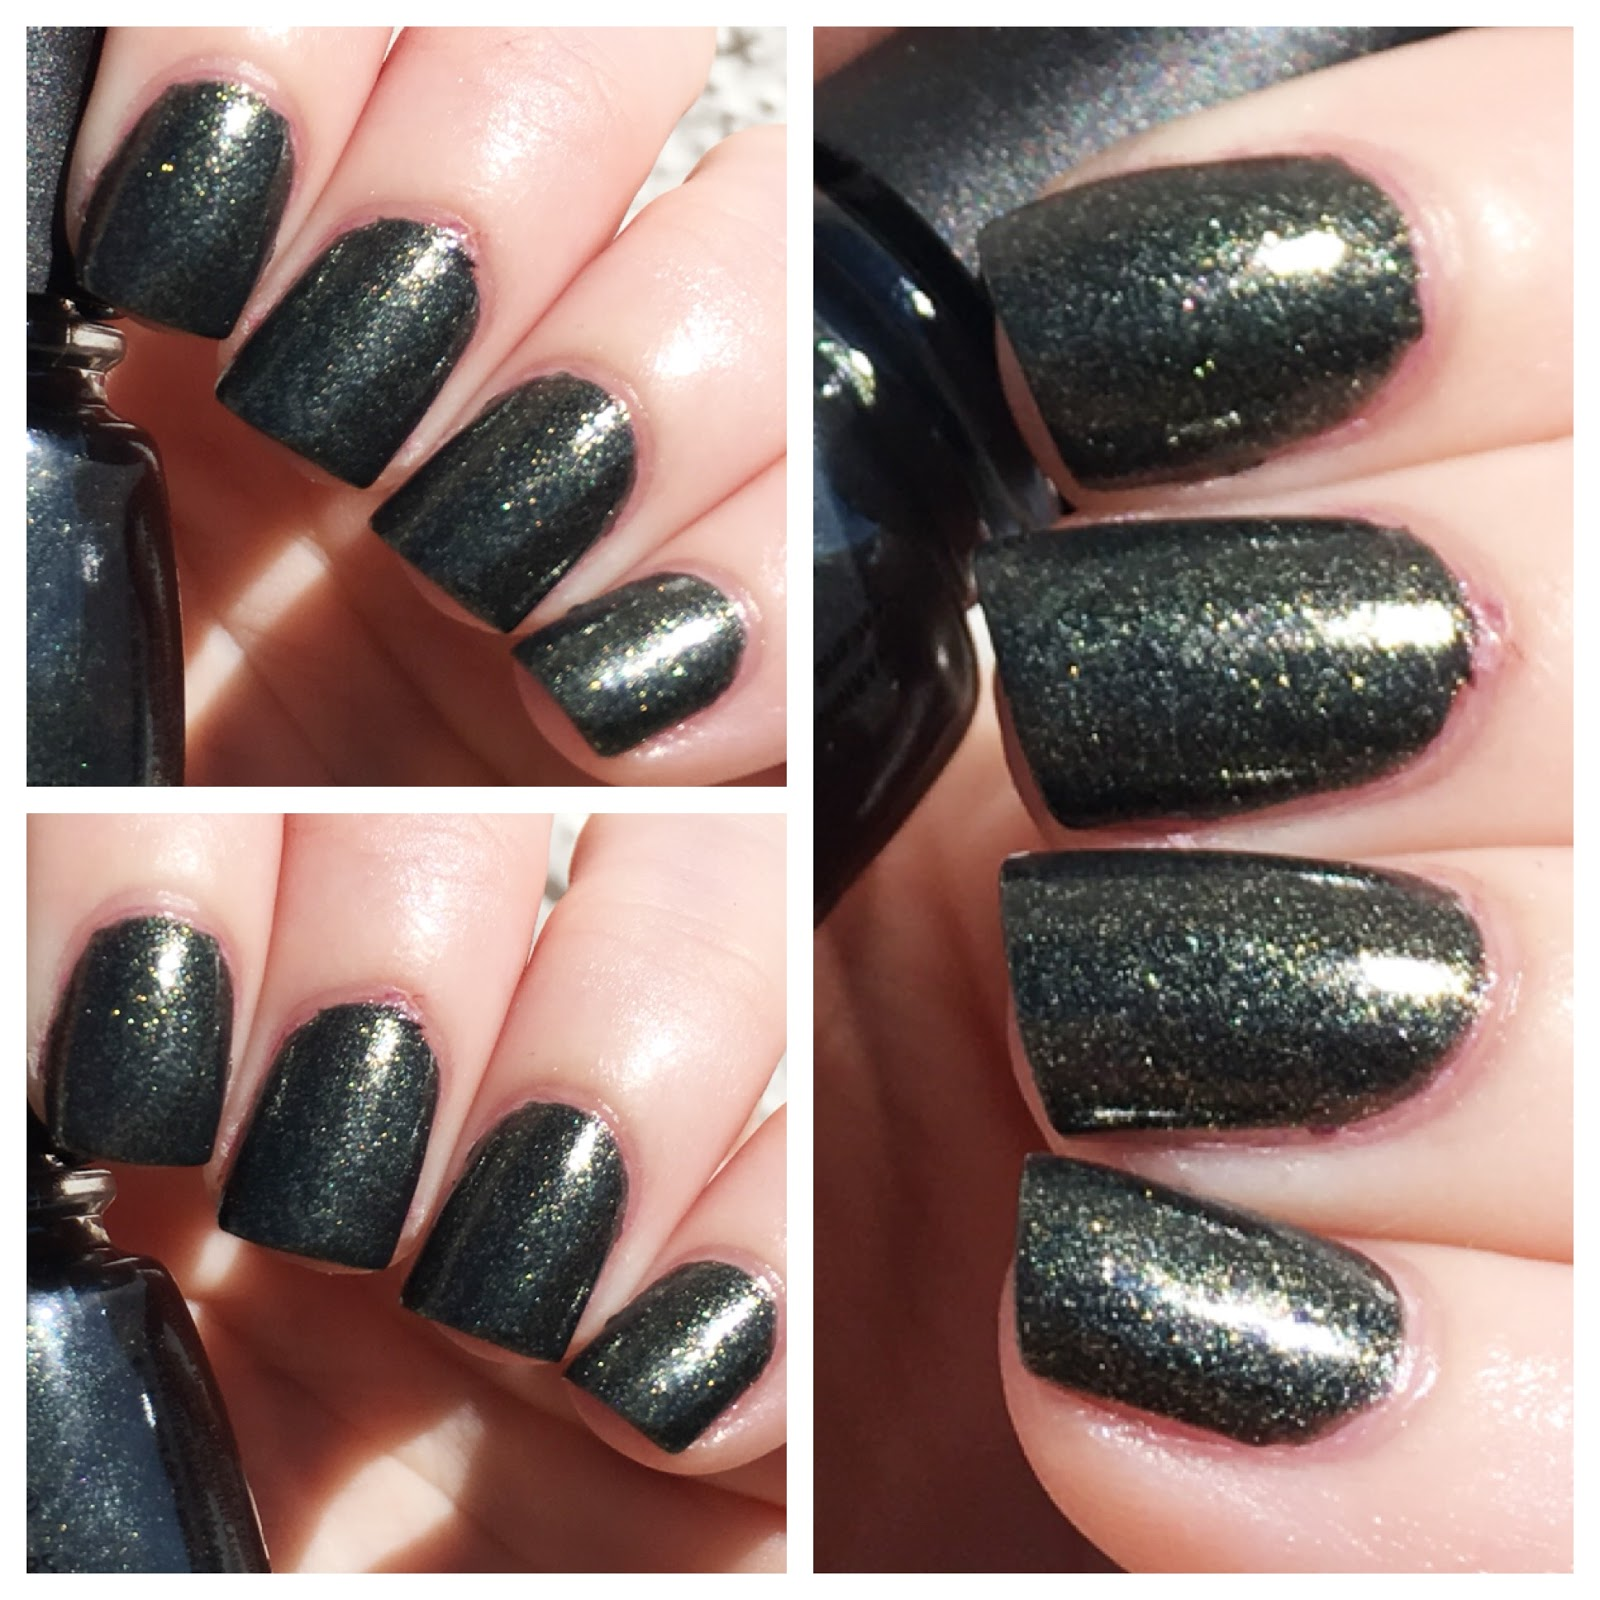 Cat eyes skinny jeans notd china glaze nail polish in lifes grimm two coats of china glaze nail polish in lifes grimm deep green with gold green shimmer nvjuhfo Gallery